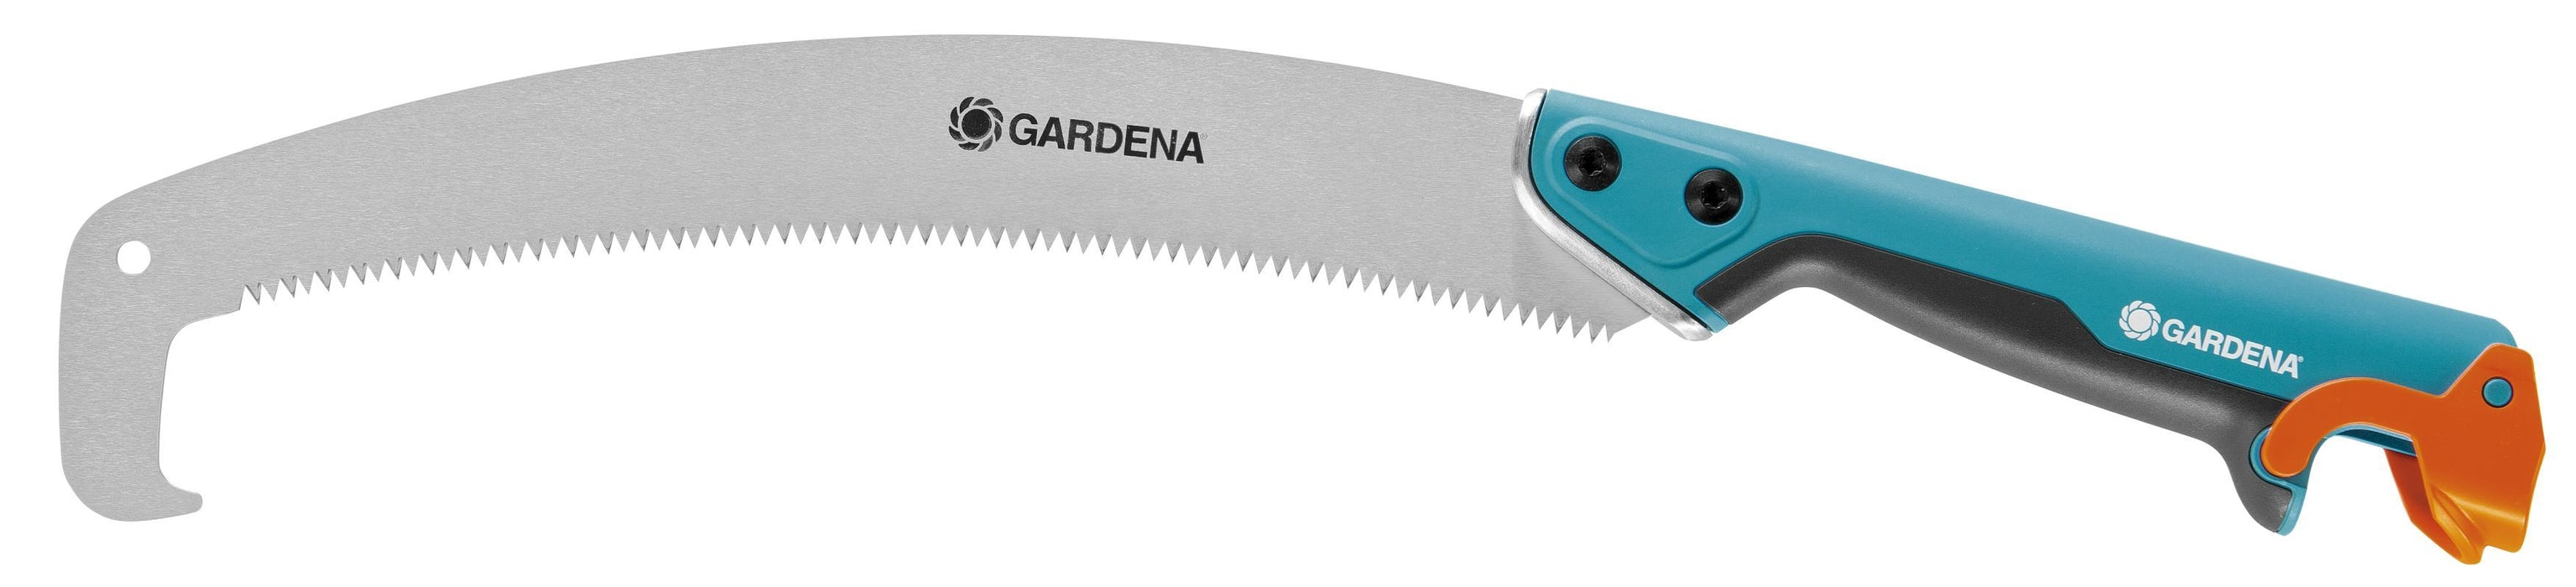 combisystem Gardeners' Saw 300 PP, curved 1 - Mincost